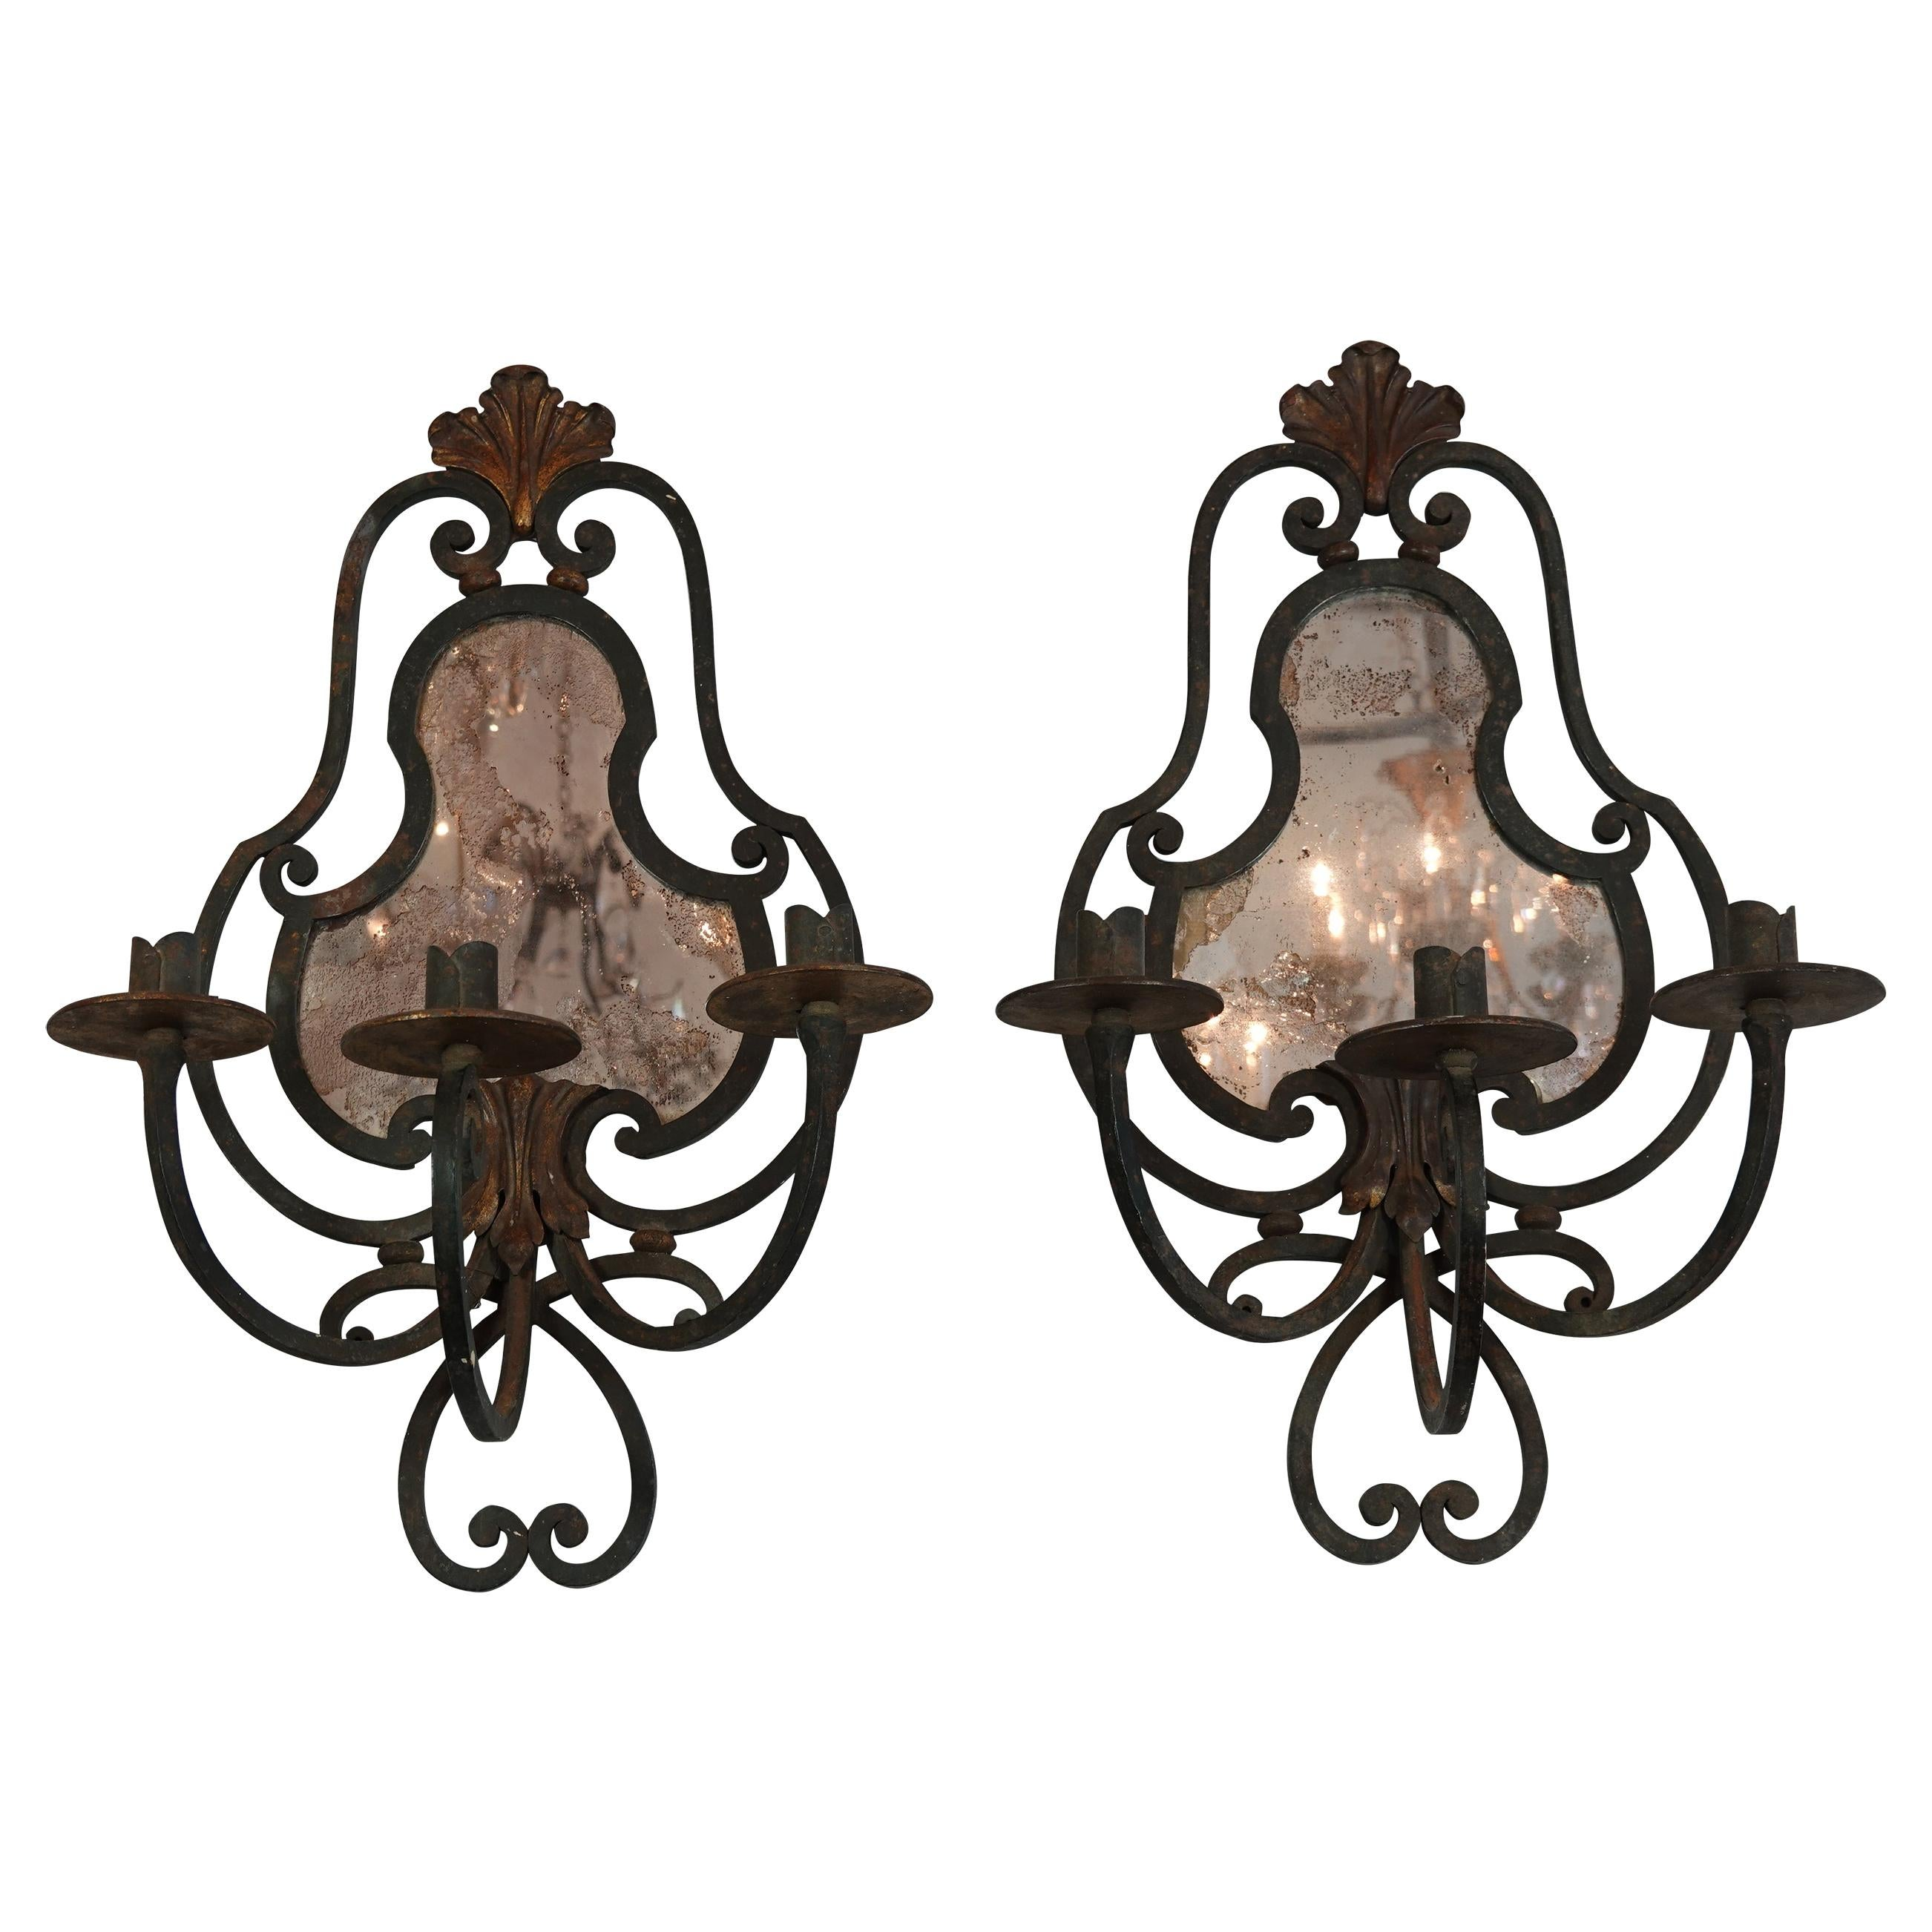 Pair of French Wrought Iron Sconces with Mirrored Backs '2 Pairs Available'